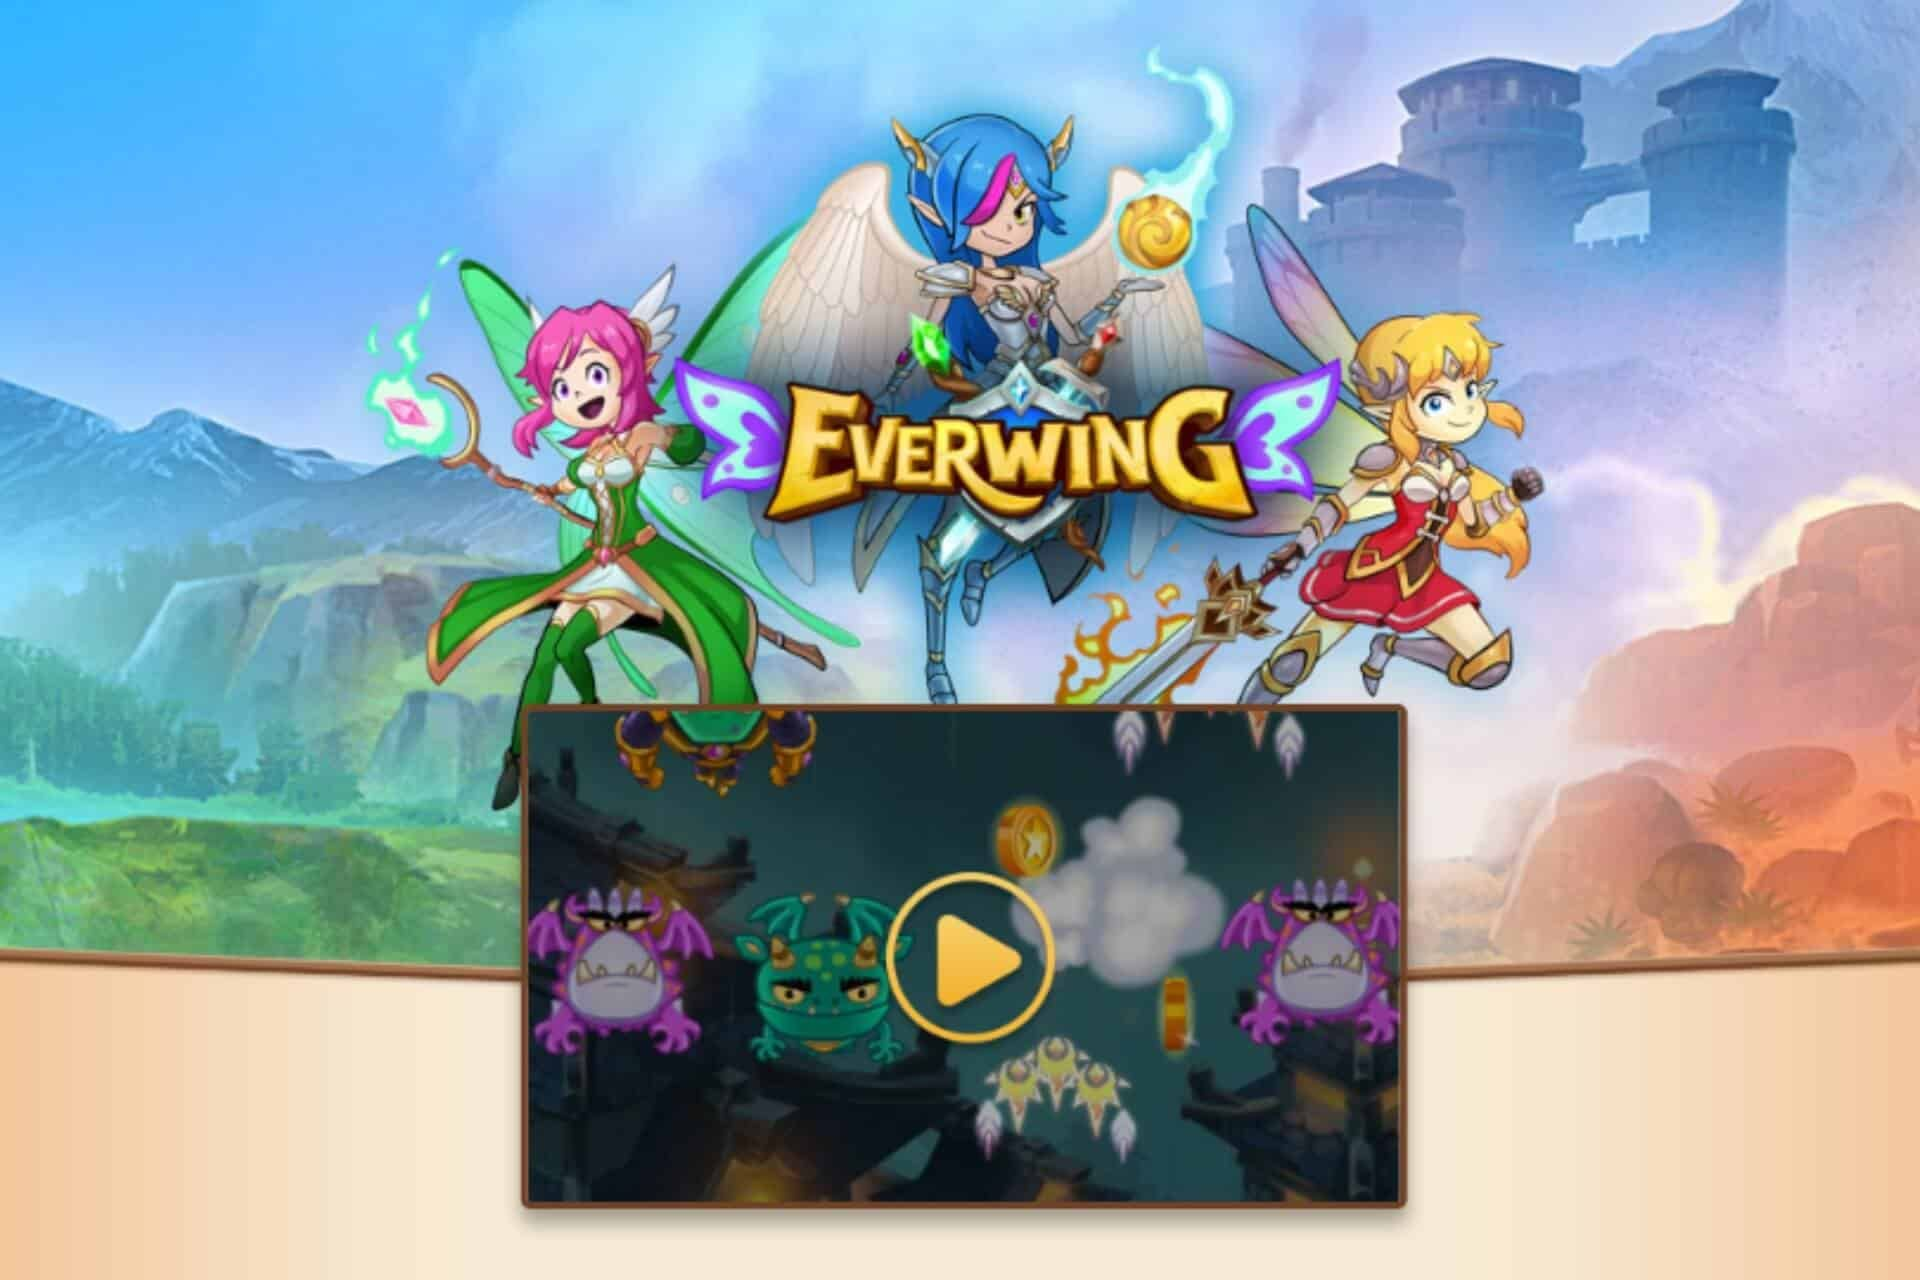 For two years now, EverWing has dominated play on Facebook